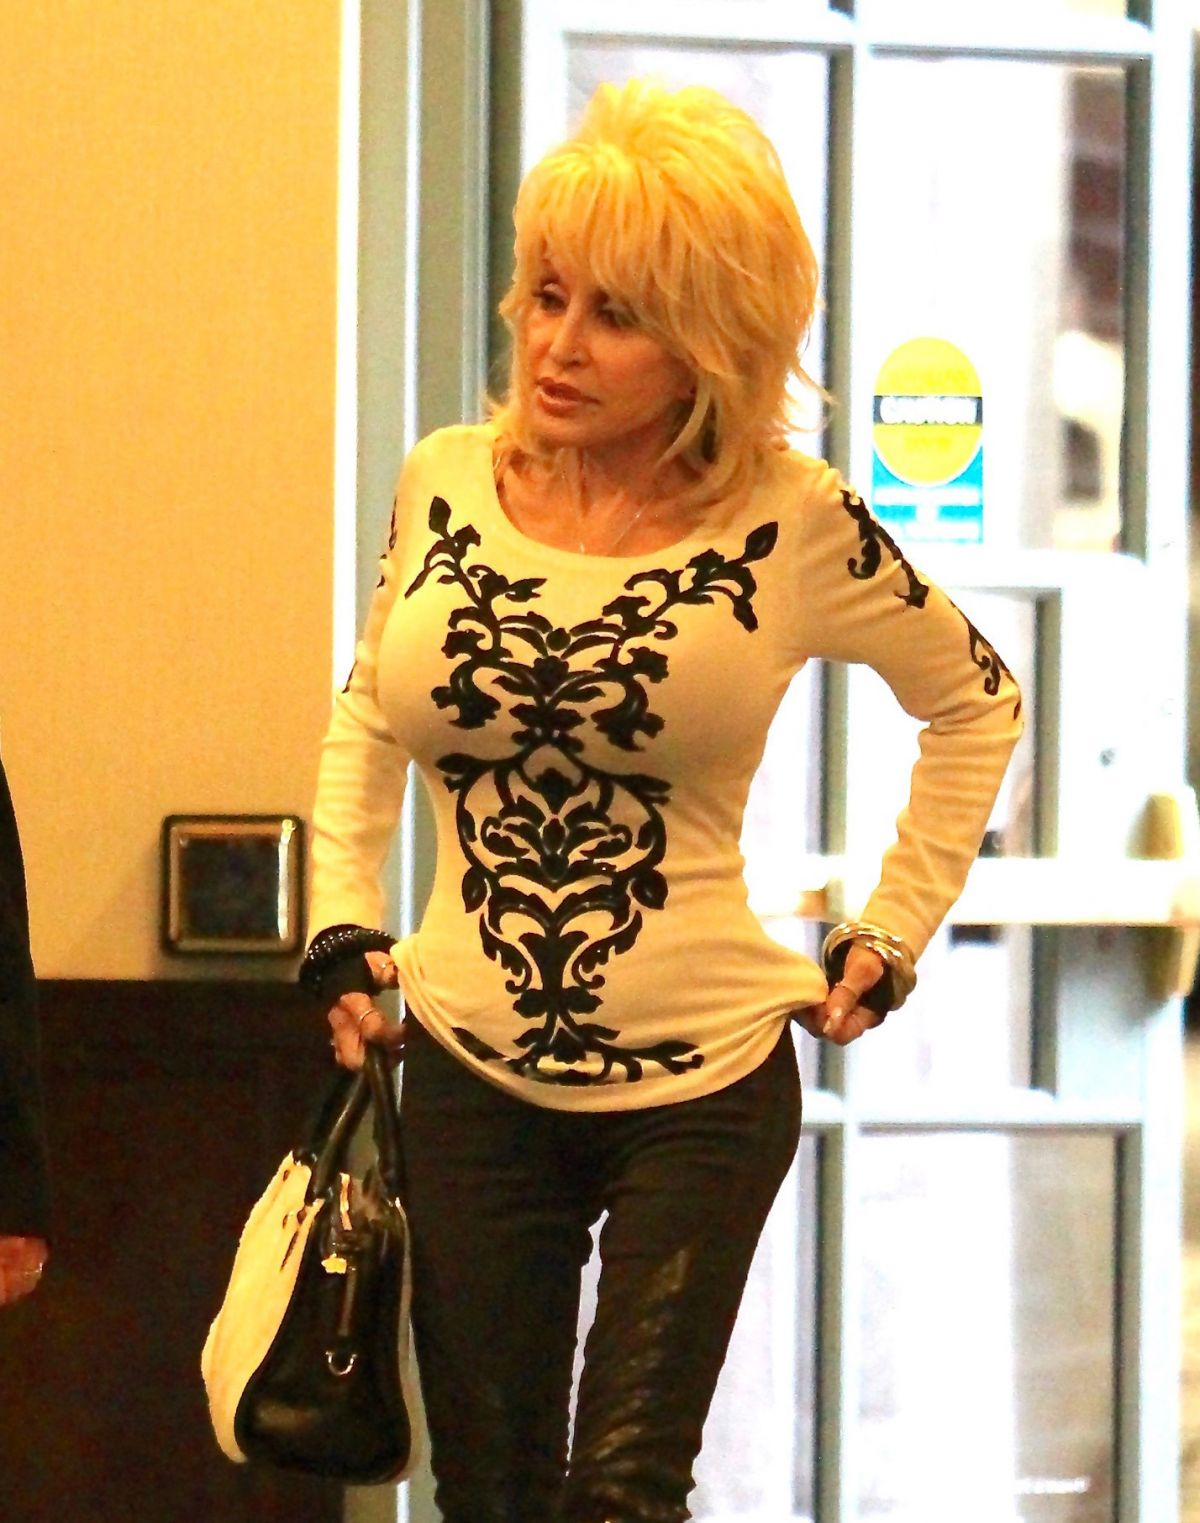 Dolly parton out and about in beverly hills 01 03 2017 for What does dolly parton s husband do for a living